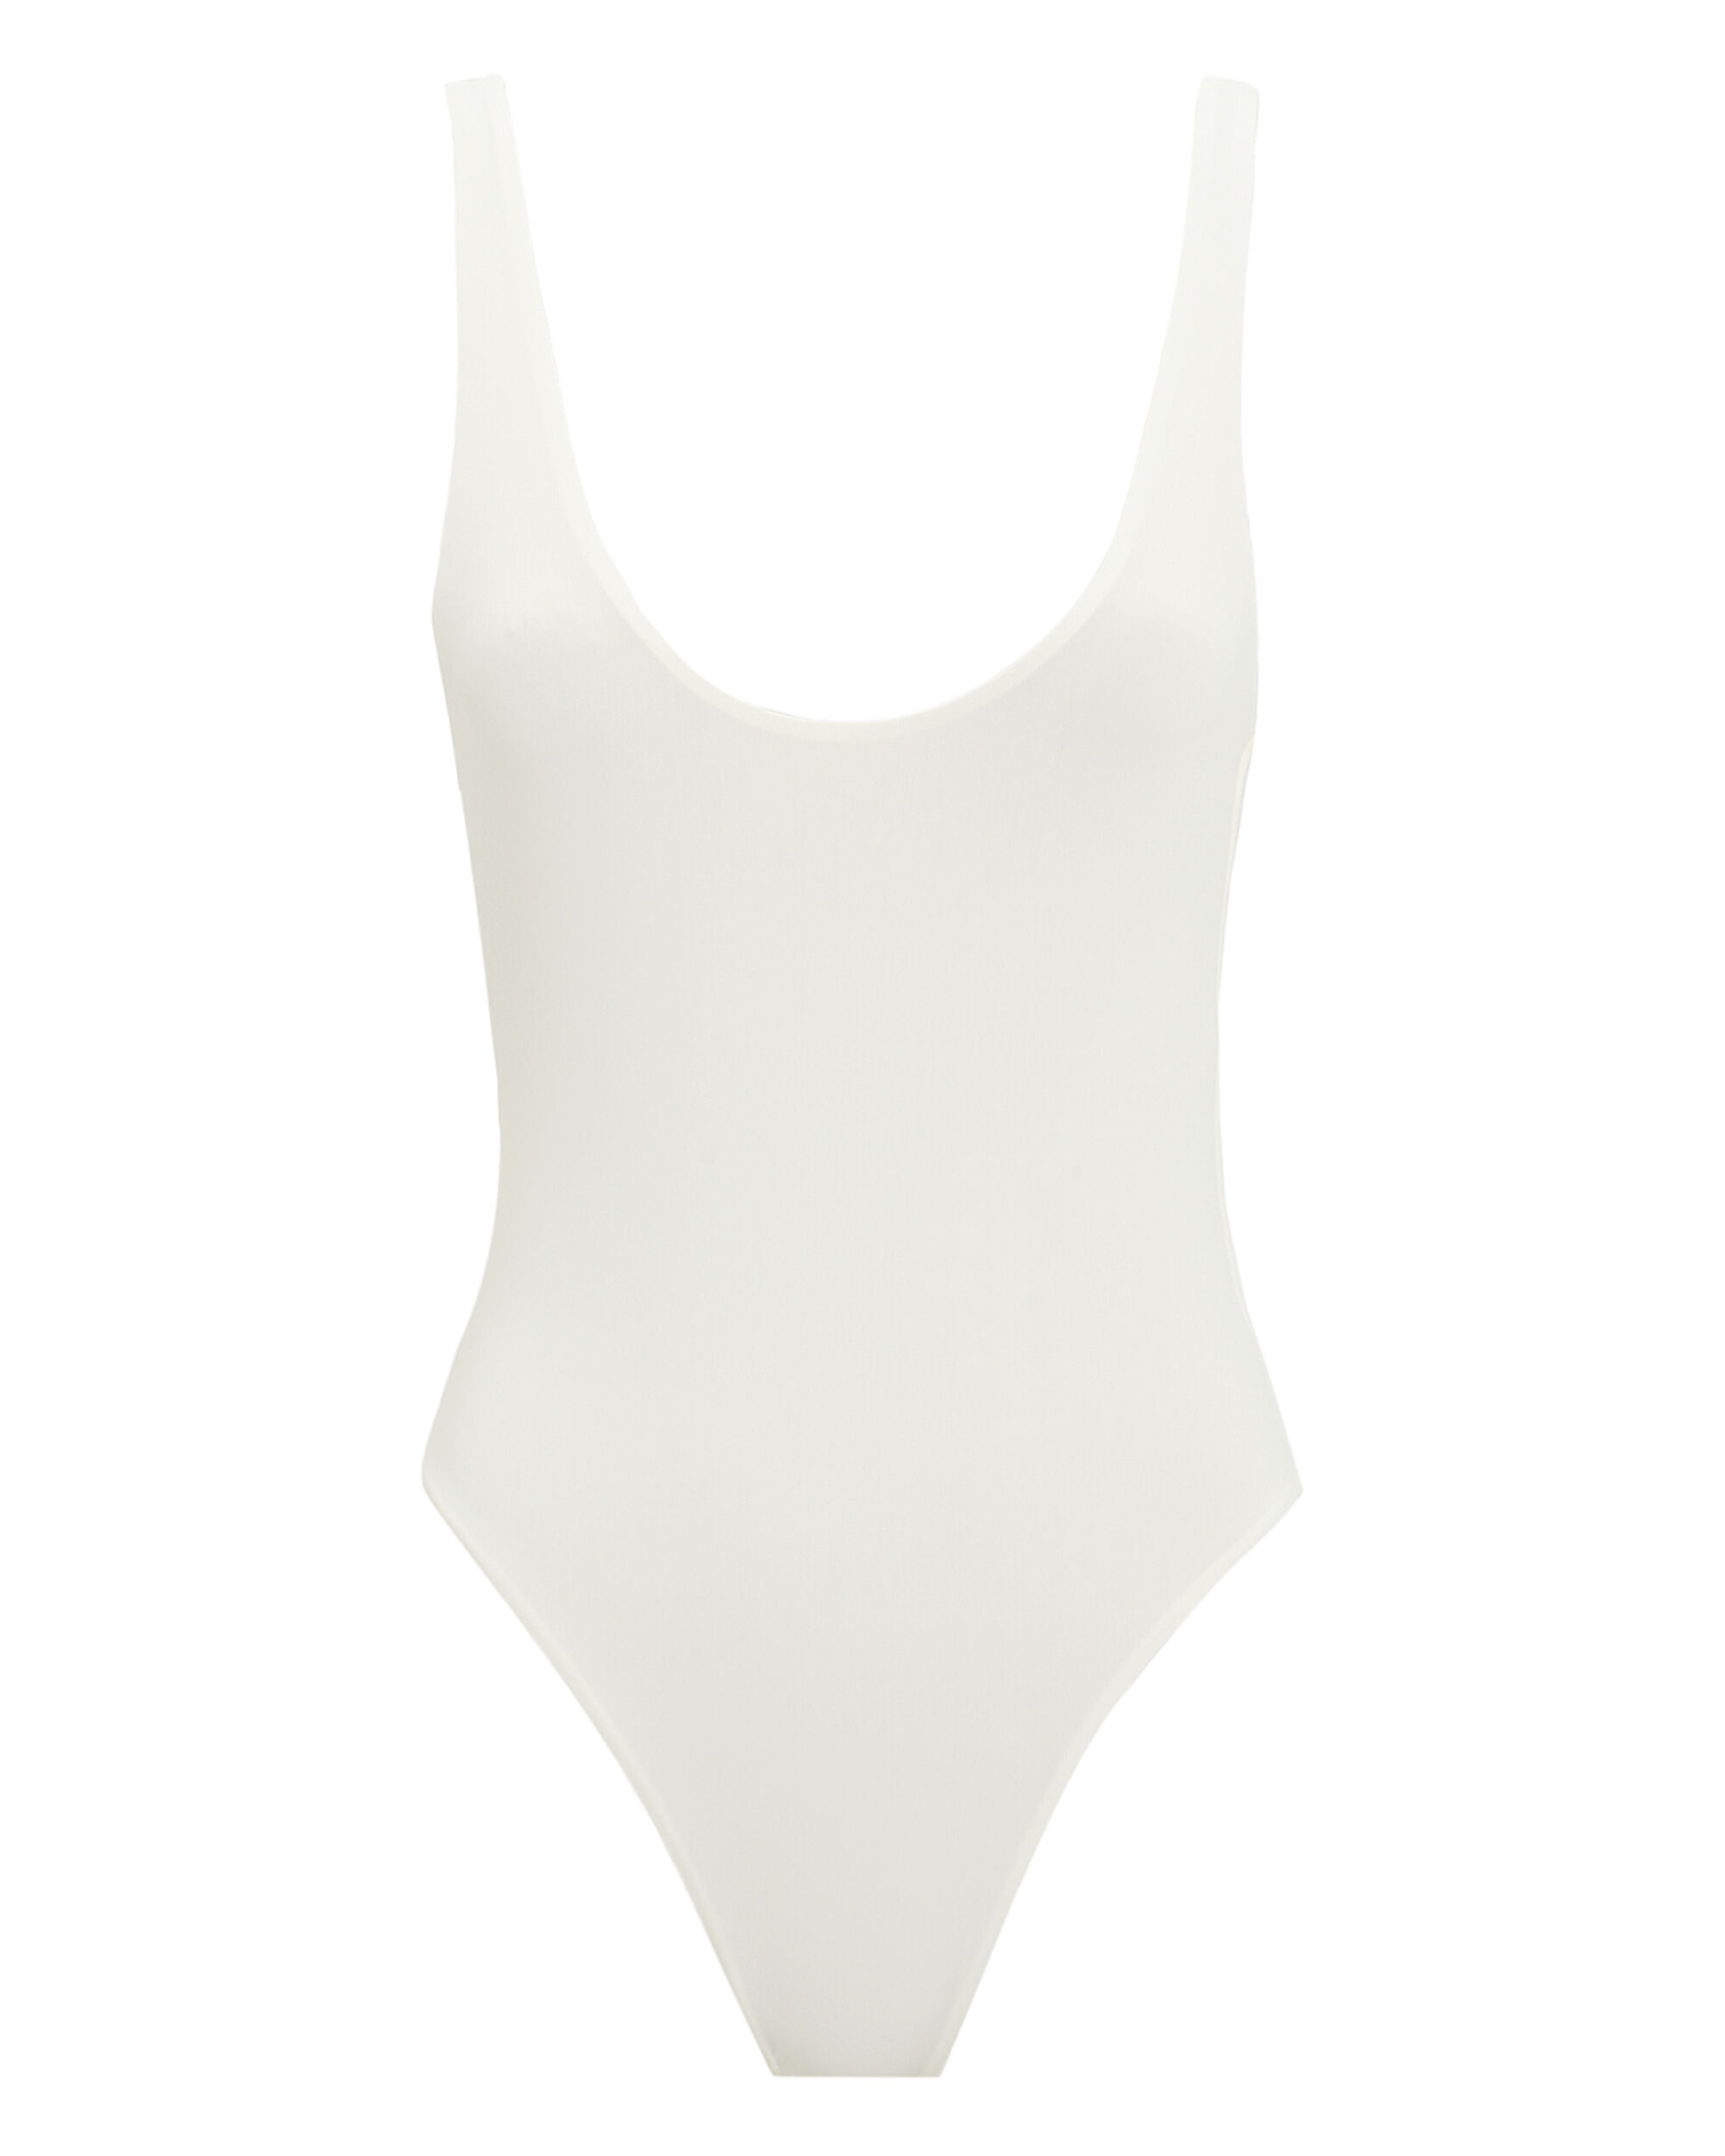 Caravia White One Piece Swimsuit, WHITE/RAINBOW, hi-res